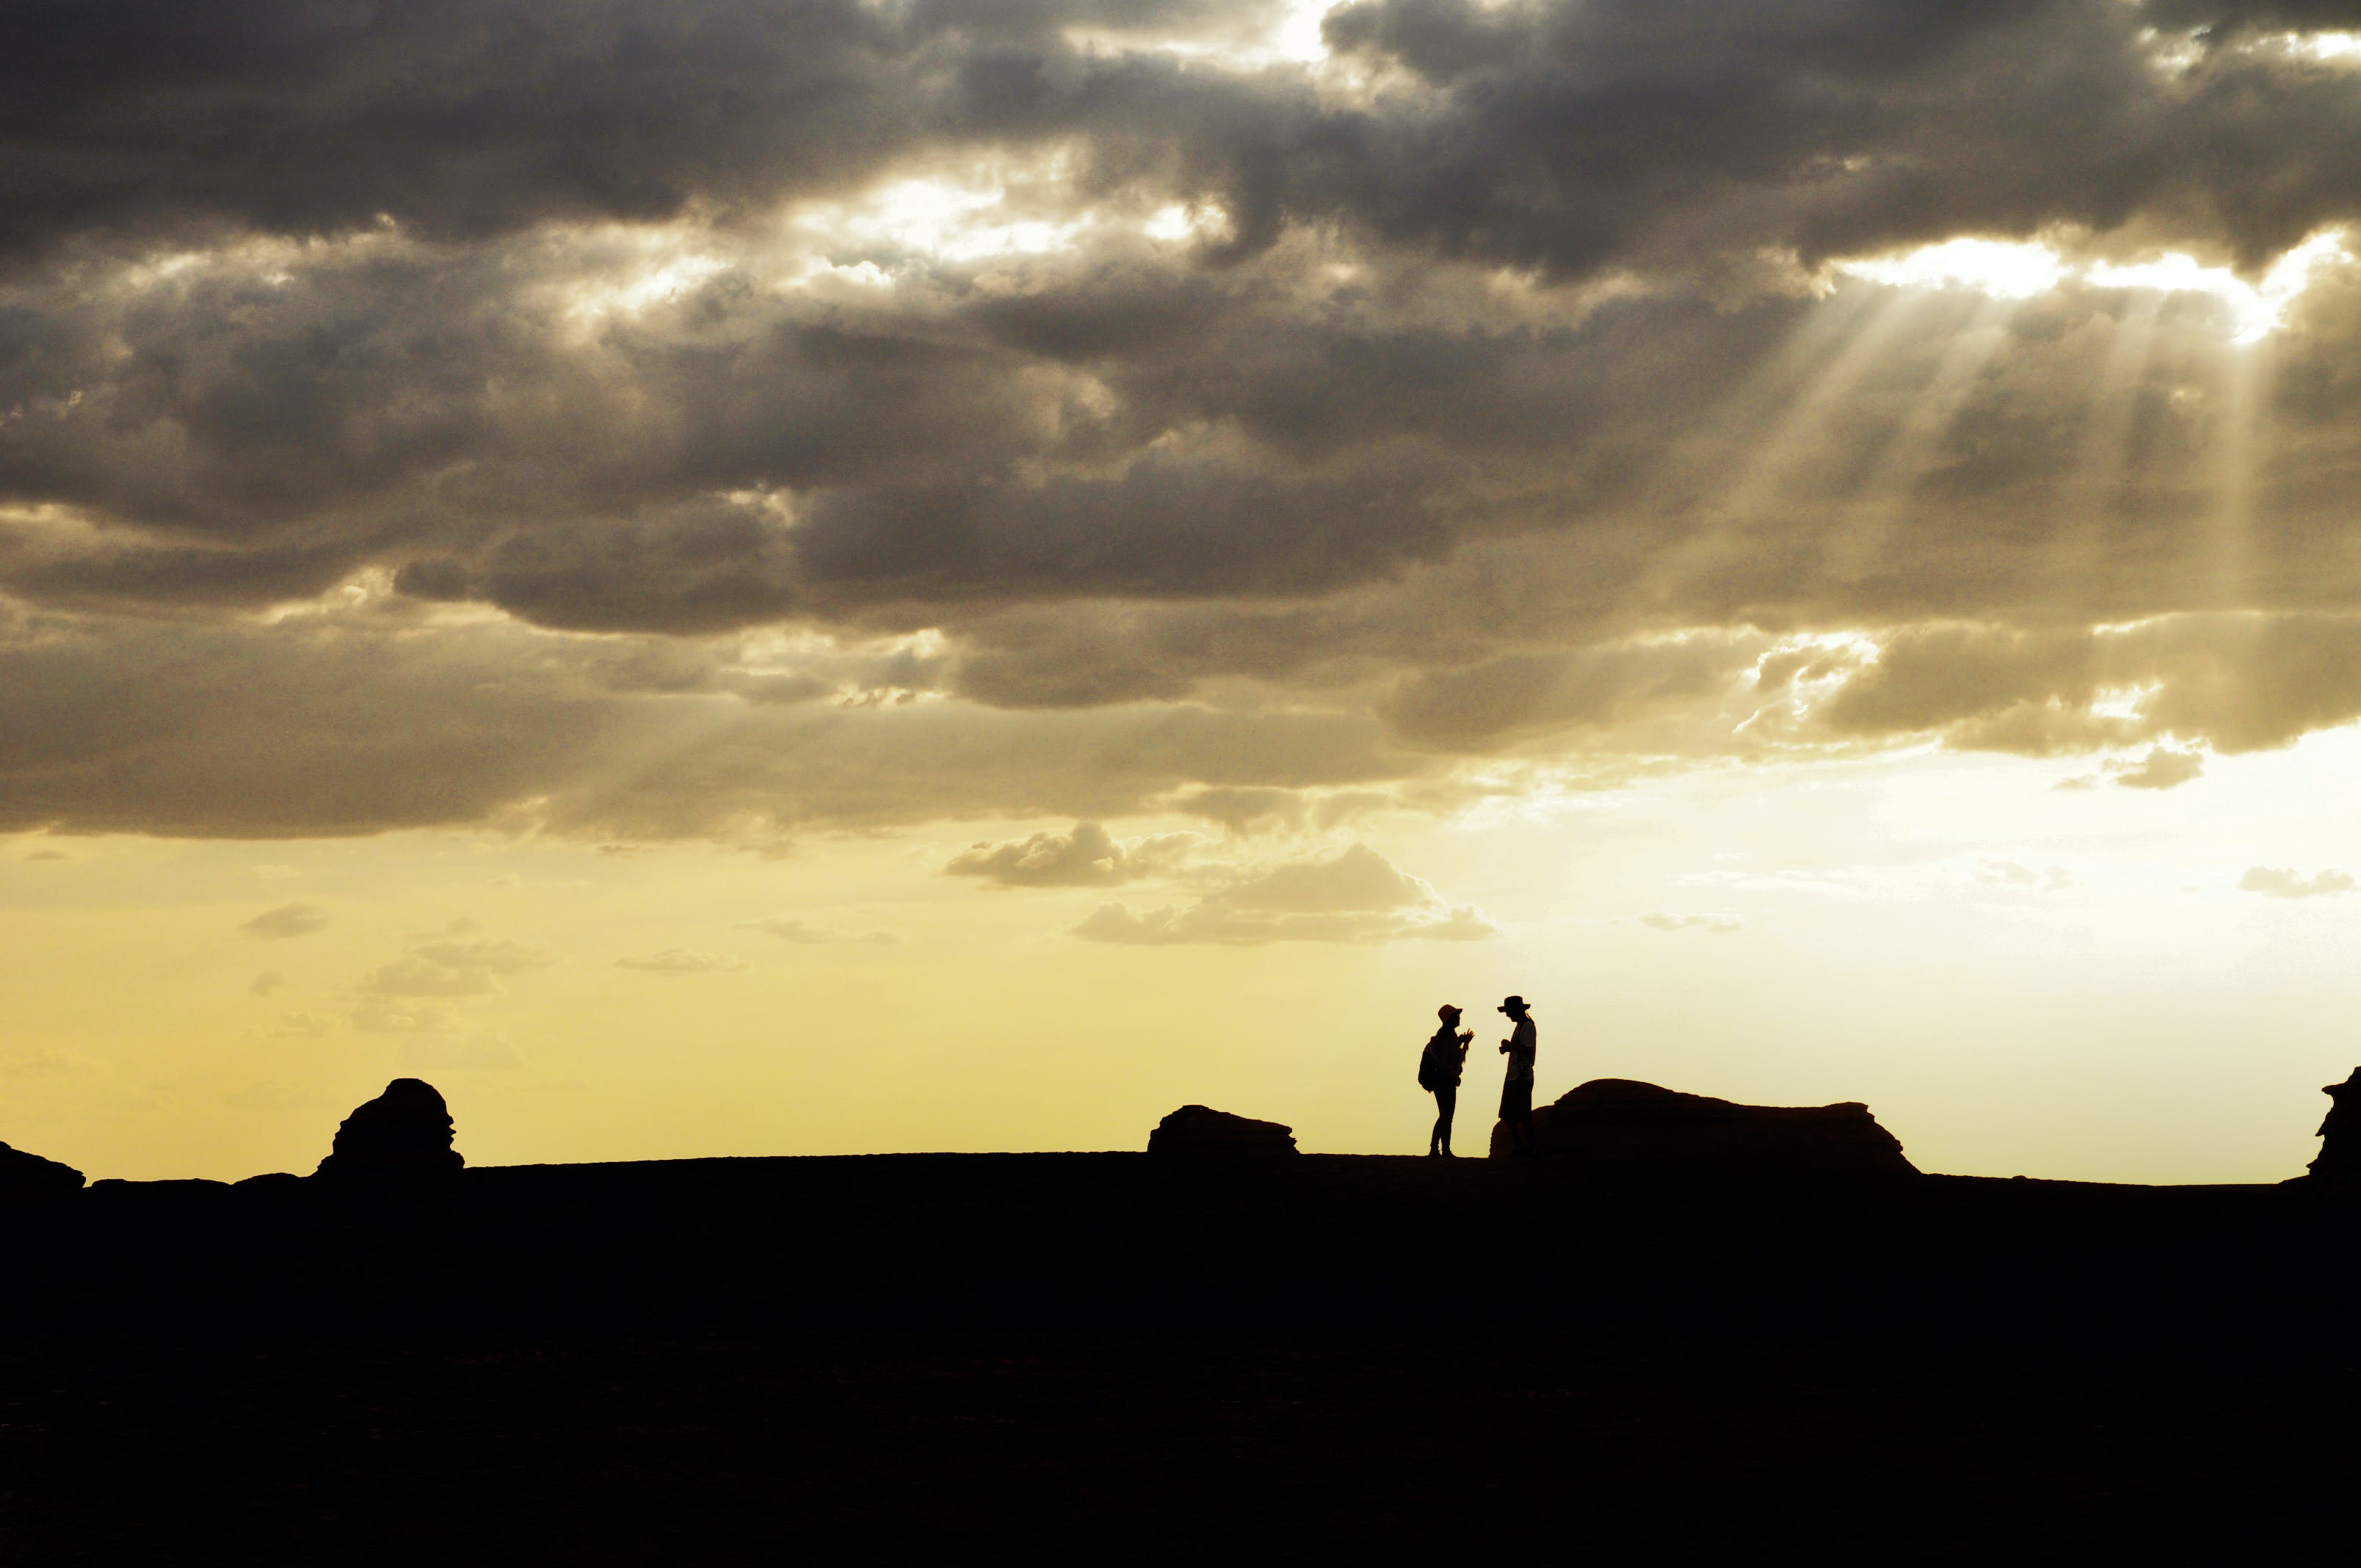 Silhouette of Two People Standing on High Ground